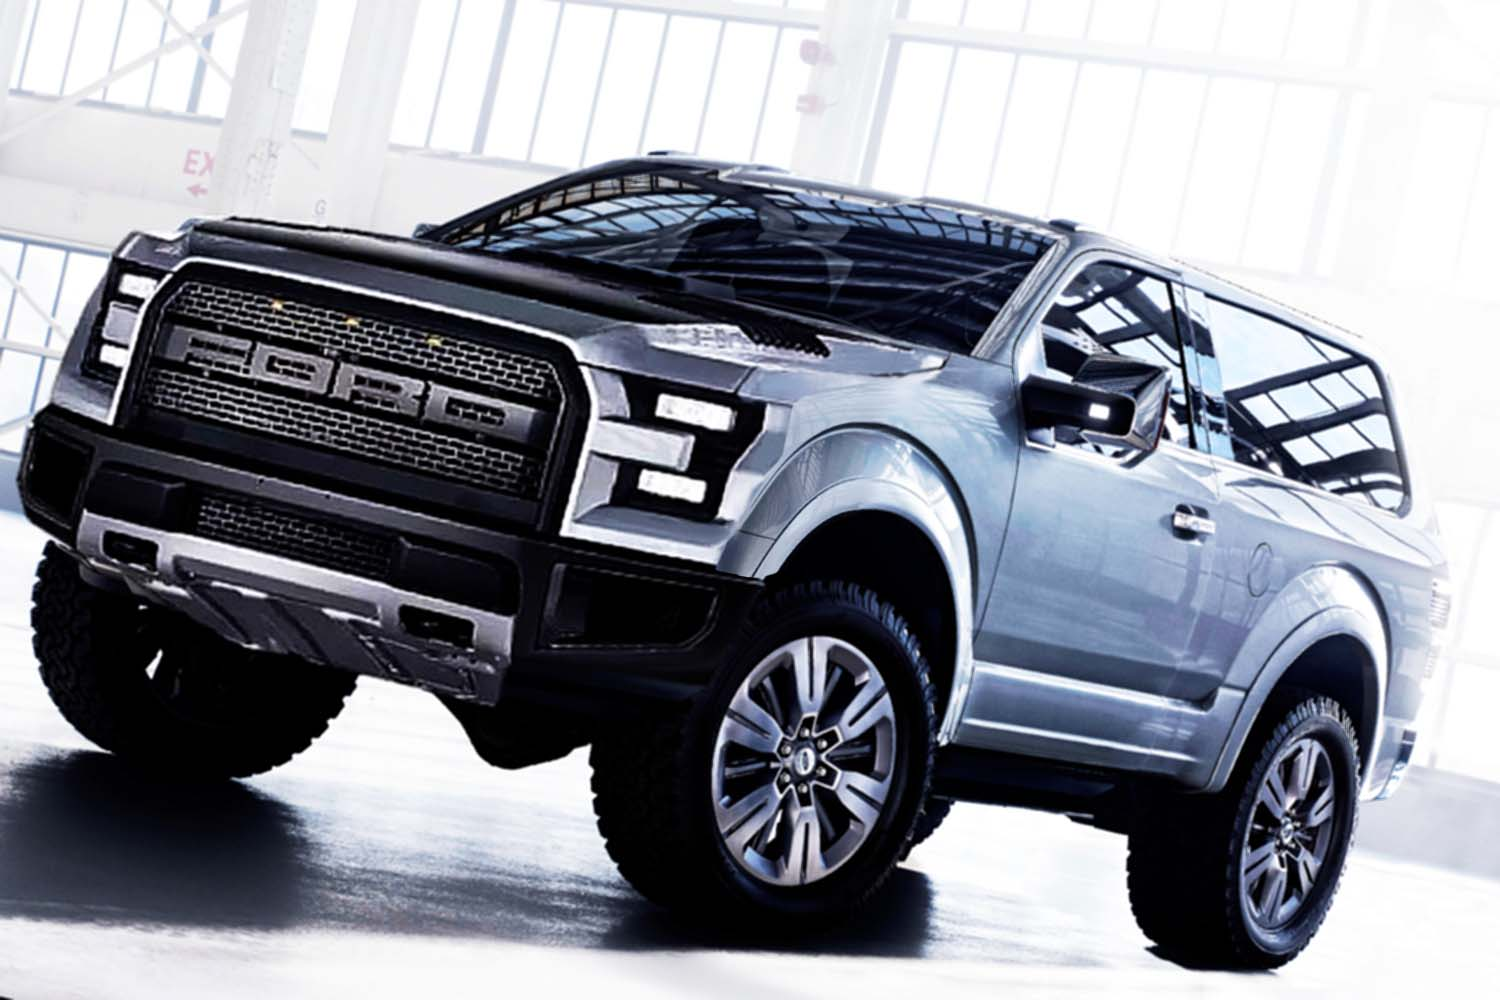 2017 Ford Bronco Raptor Exterior Concept The Styling